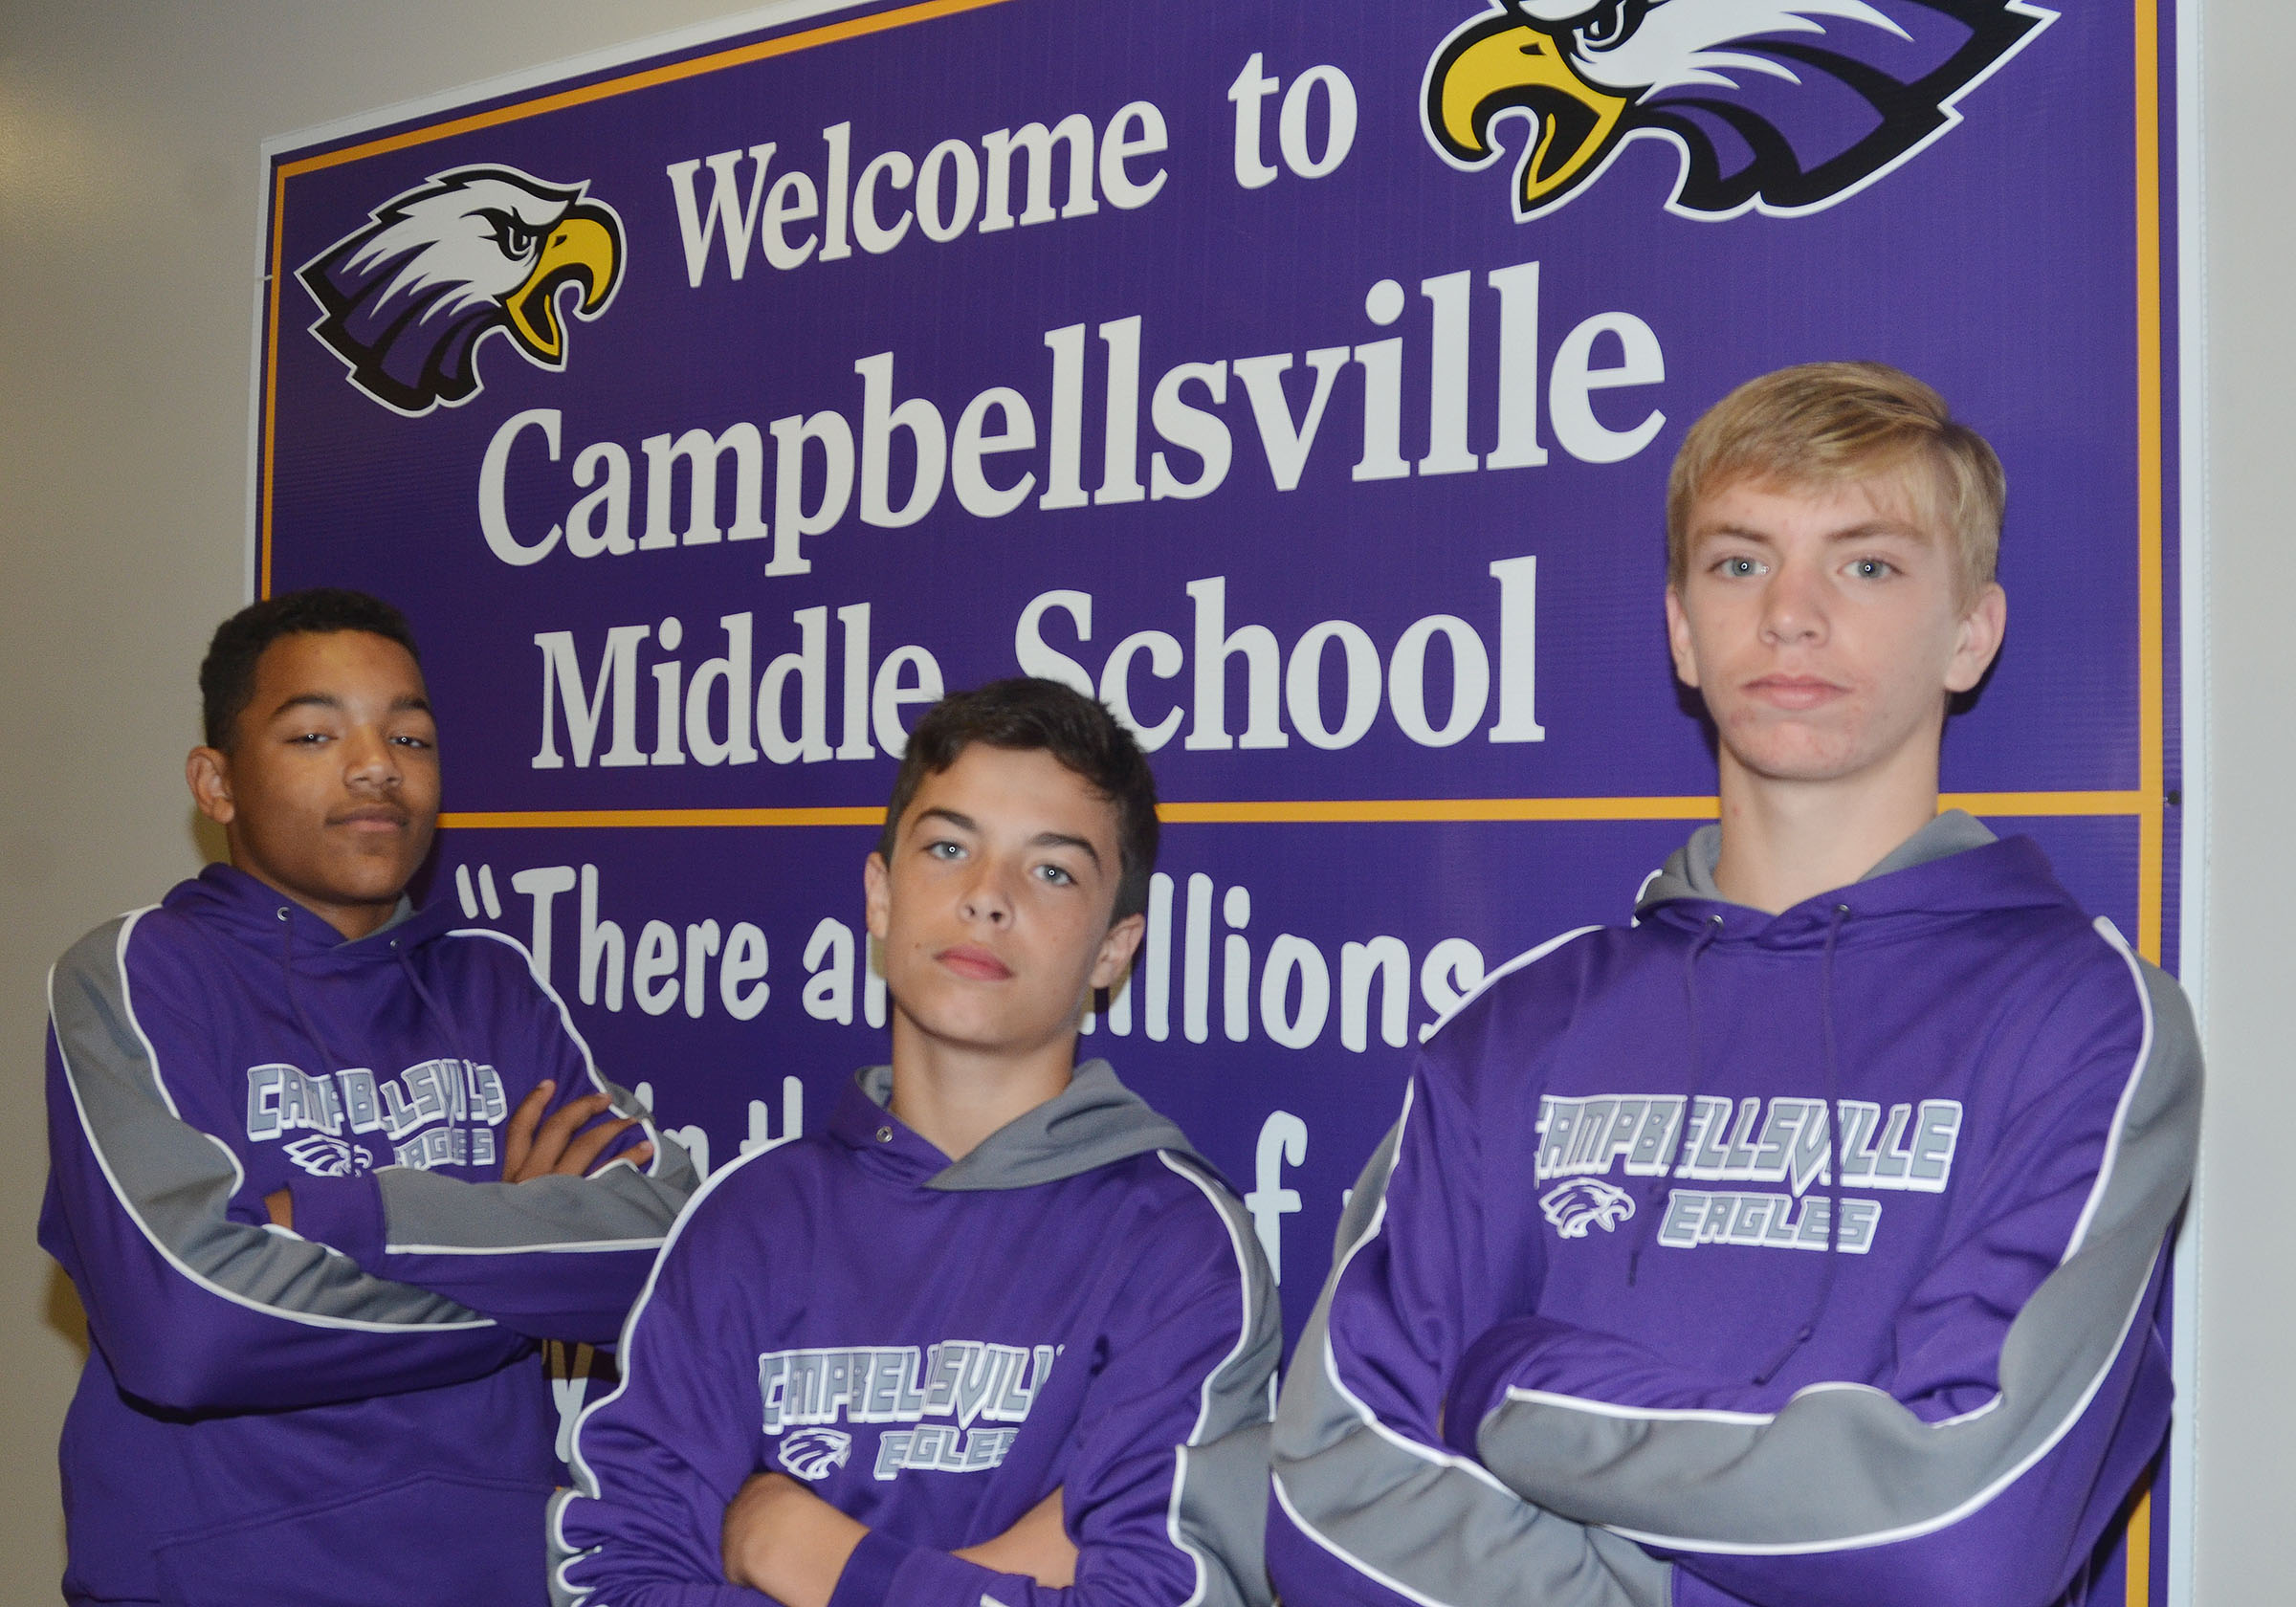 CMS eighth-grader Reggie Thomas, at left, was named to the Kentucky Middle School Football Association west all-star team, and sixth-grader Gavin Oliver, center, and eighth-grader Arren Hash were named to Football University's national Team Kentucky.